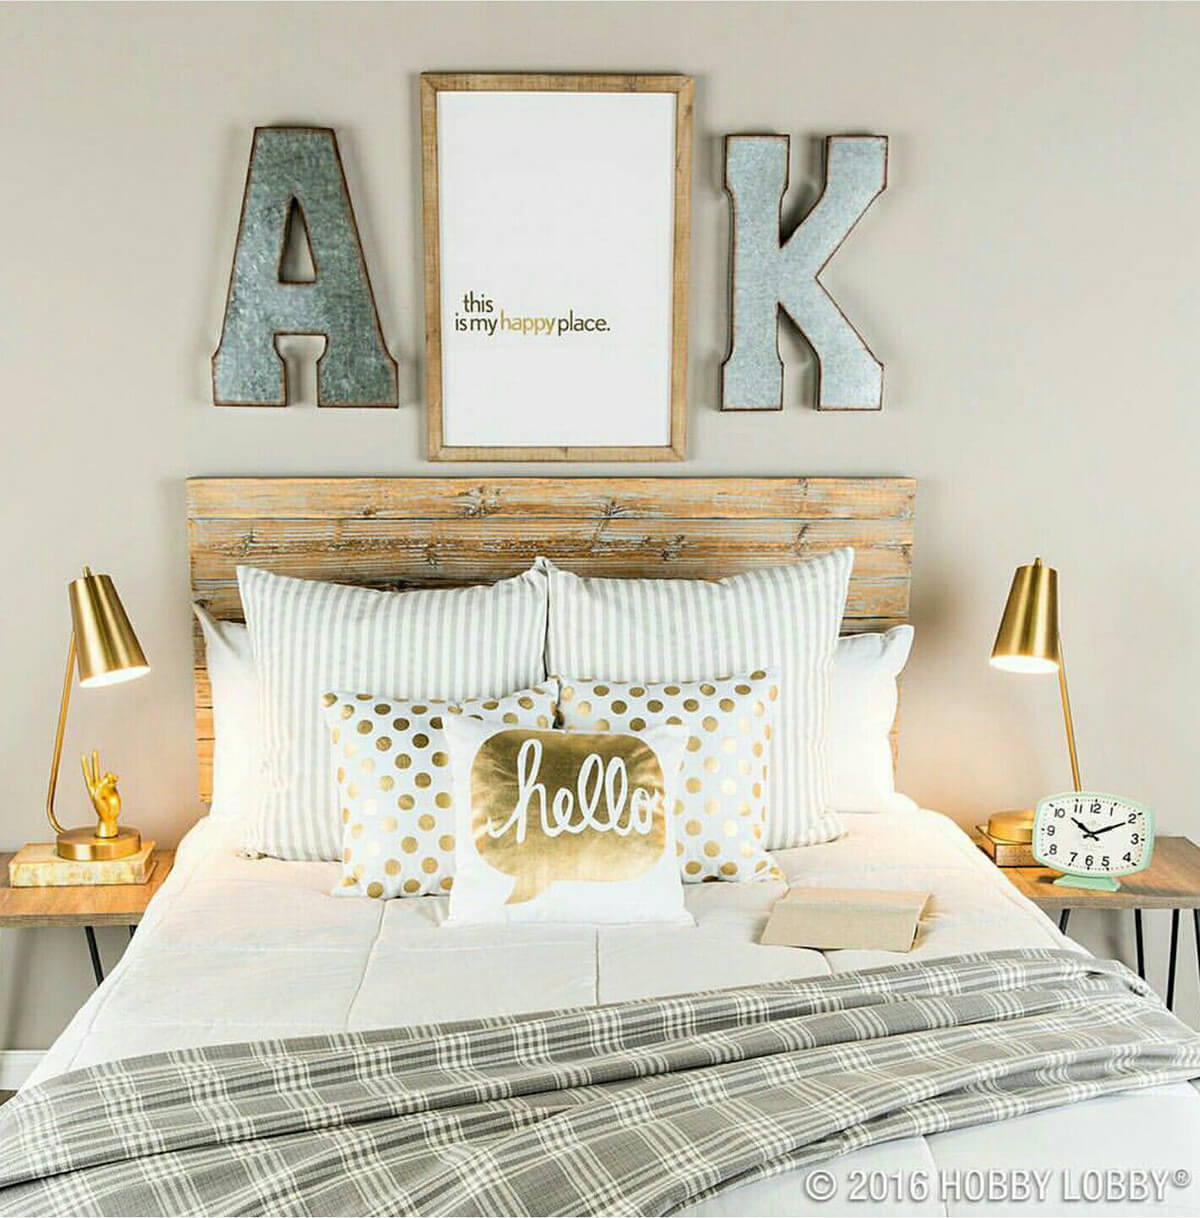 10+ Best Bedroom Wall Decor Ideas and Designs for 10